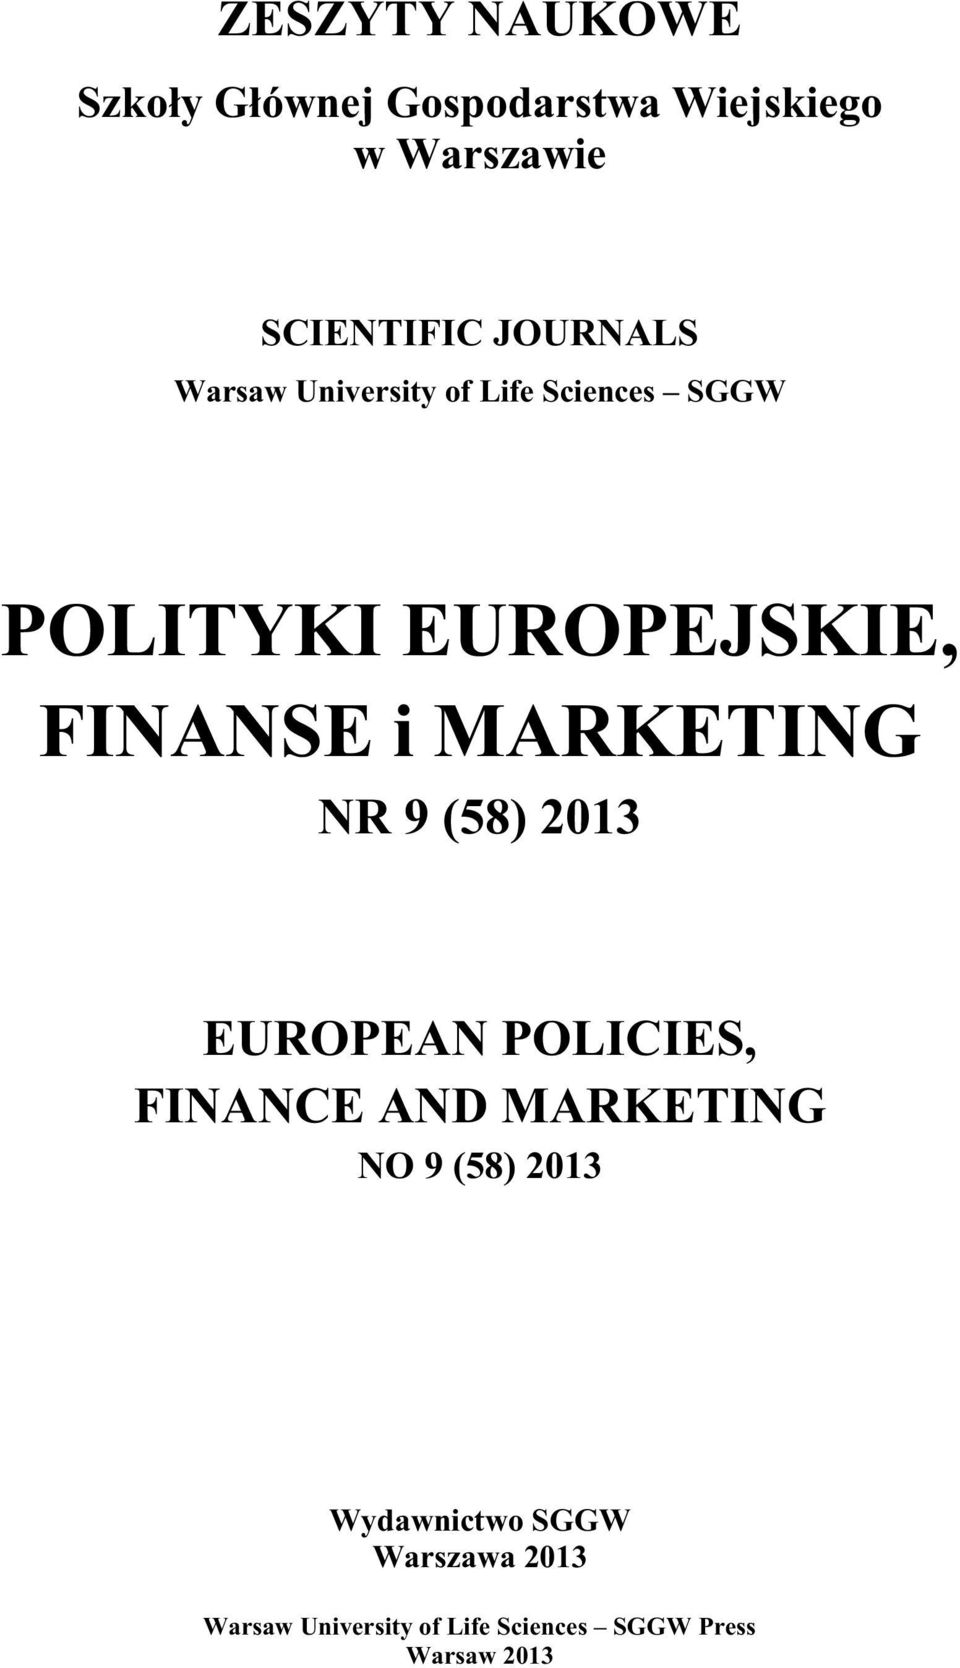 MARKETING NR 9 (58) 2013 EUROPEAN POLICIES, FINANCE AND MARKETING NO 9 (58) 2013